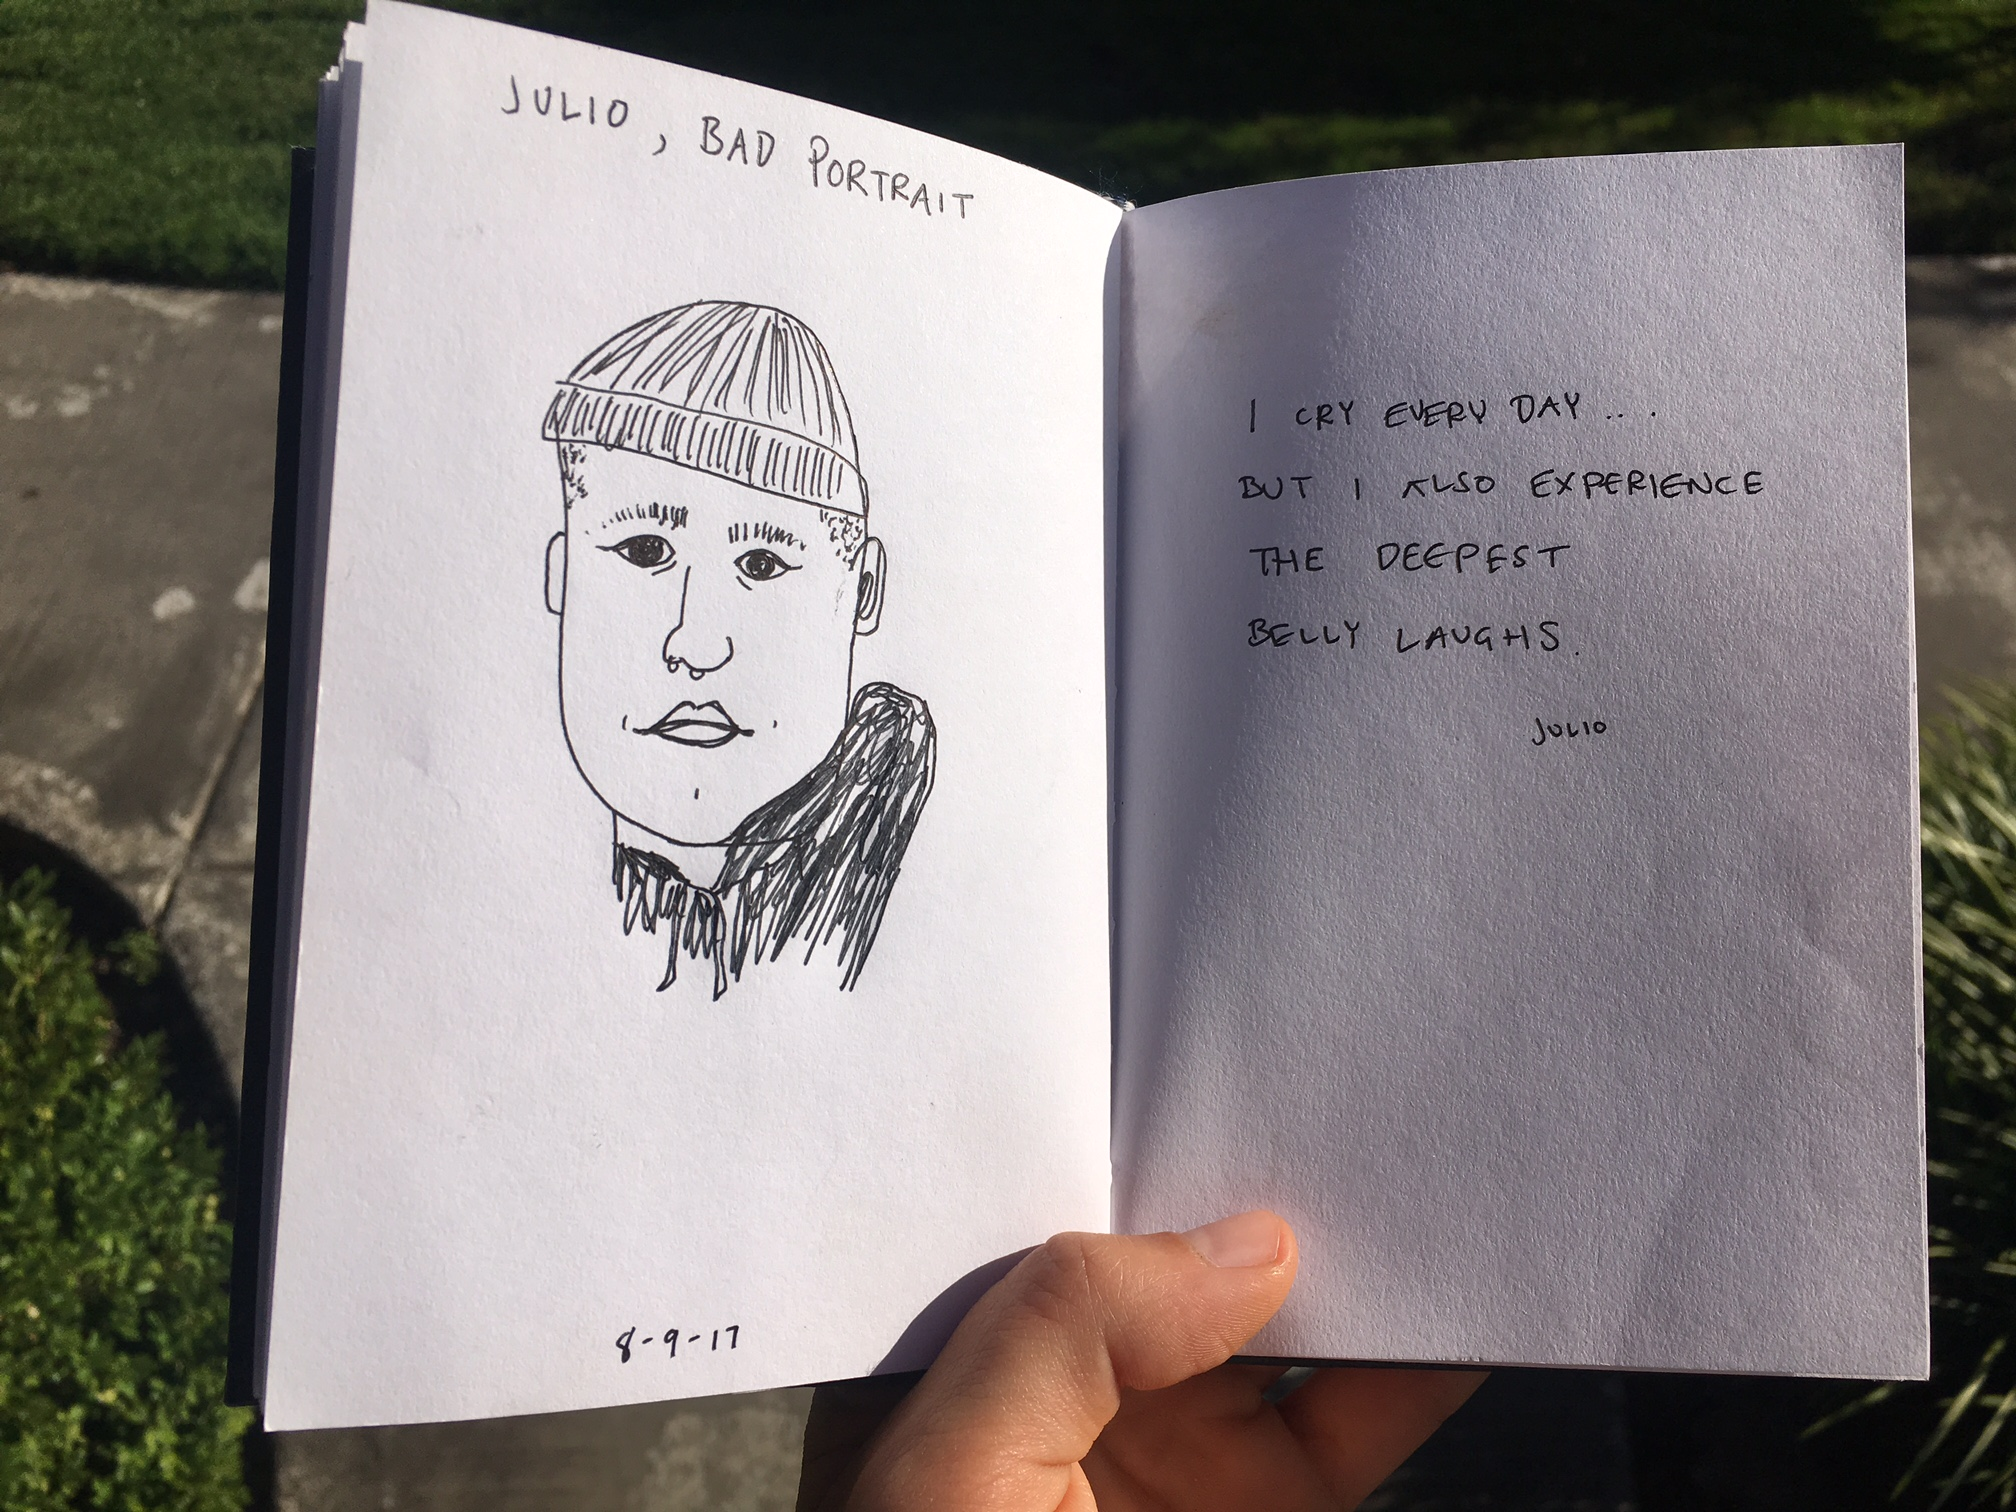 The moment someone says something I want to remember, I like to draw their  Bad Portrait  with their quote next to it.